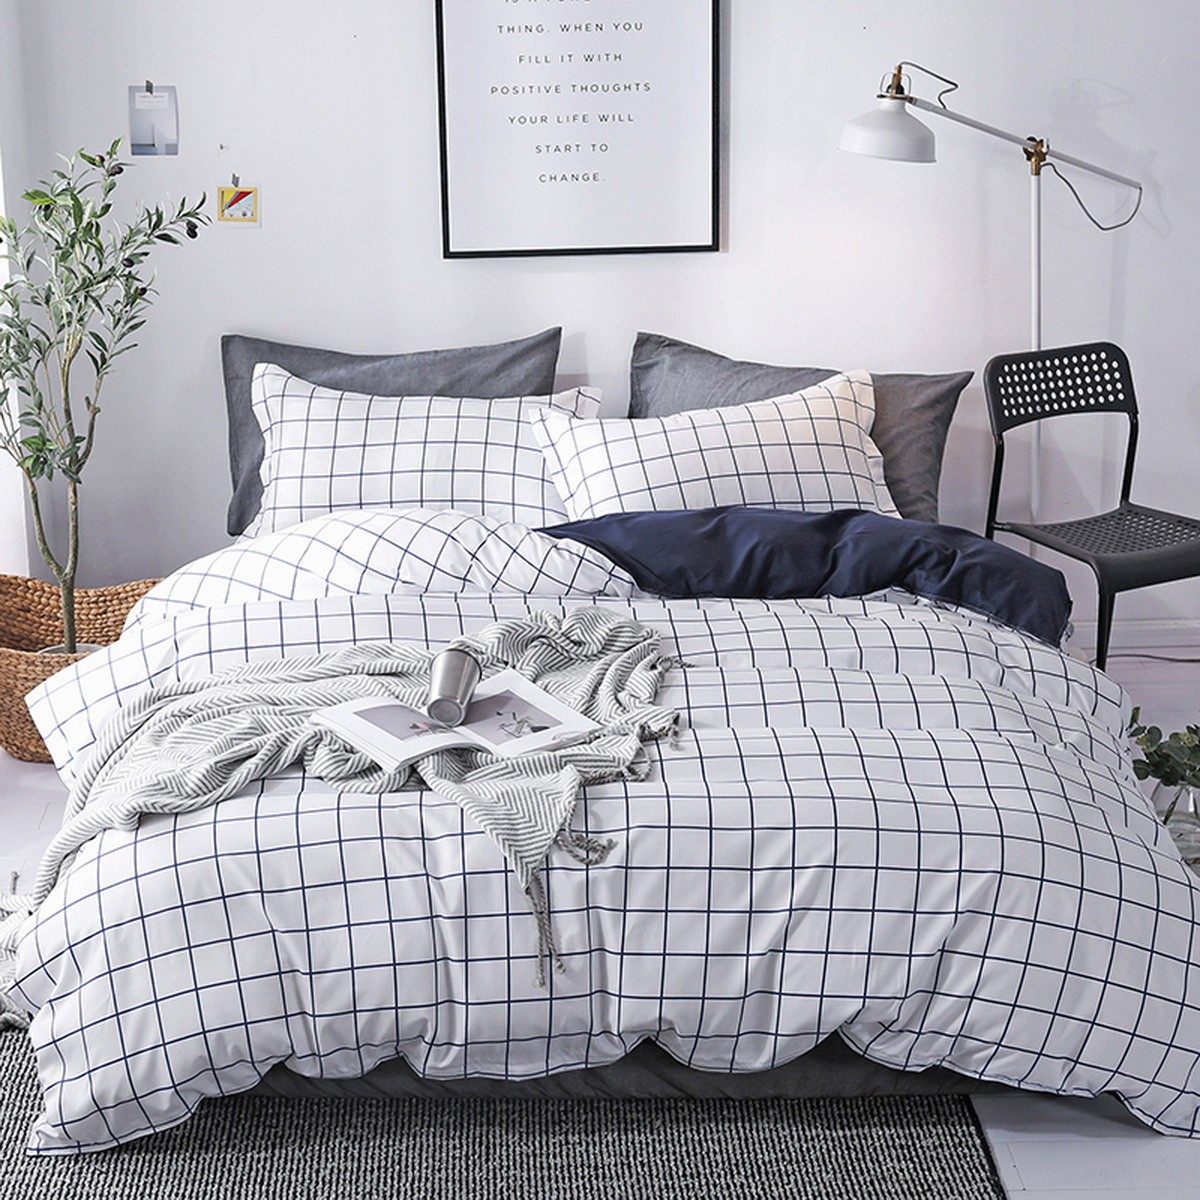 Aix Black White Grid Check Duvet Cover Set K1907019 0cm